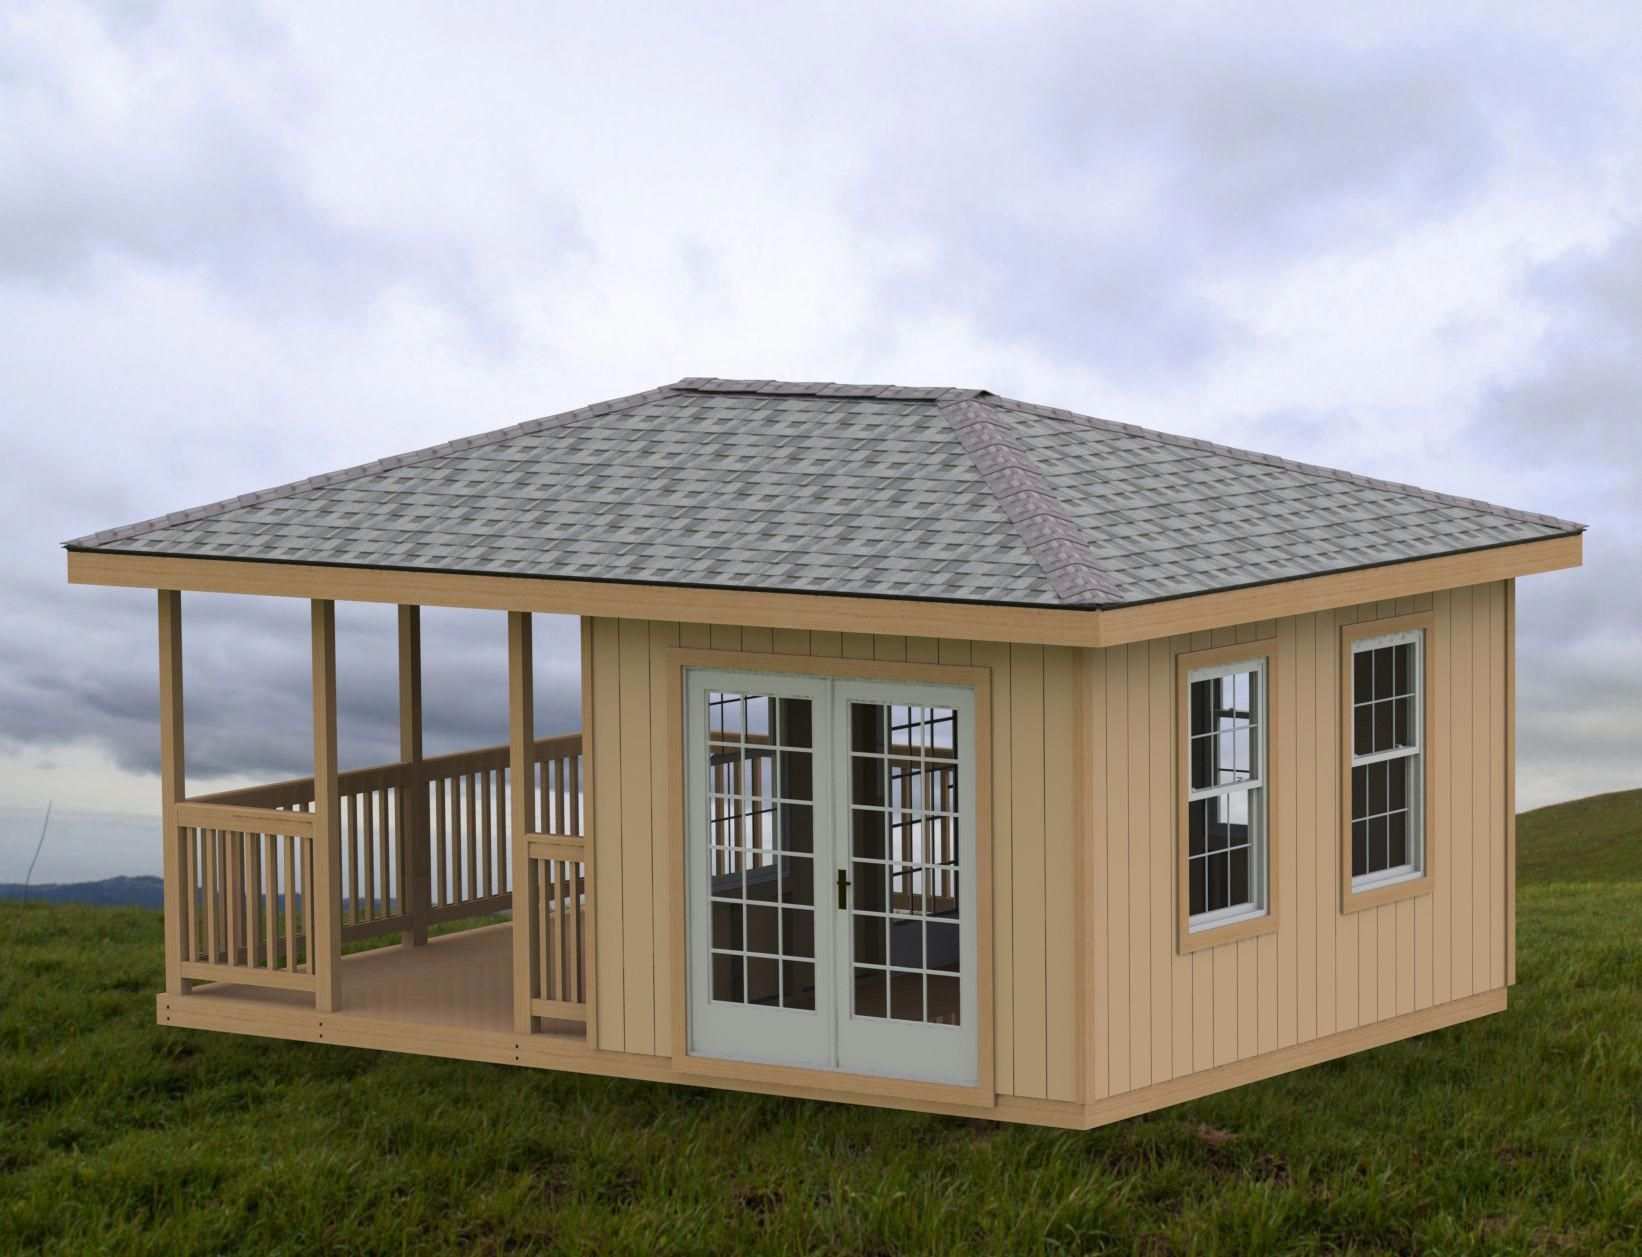 20 X 10 Gazebo Shed Man Cave Downloadable Building Plans Shed Plans Diy Shed Plans 10x12 Shed Plans